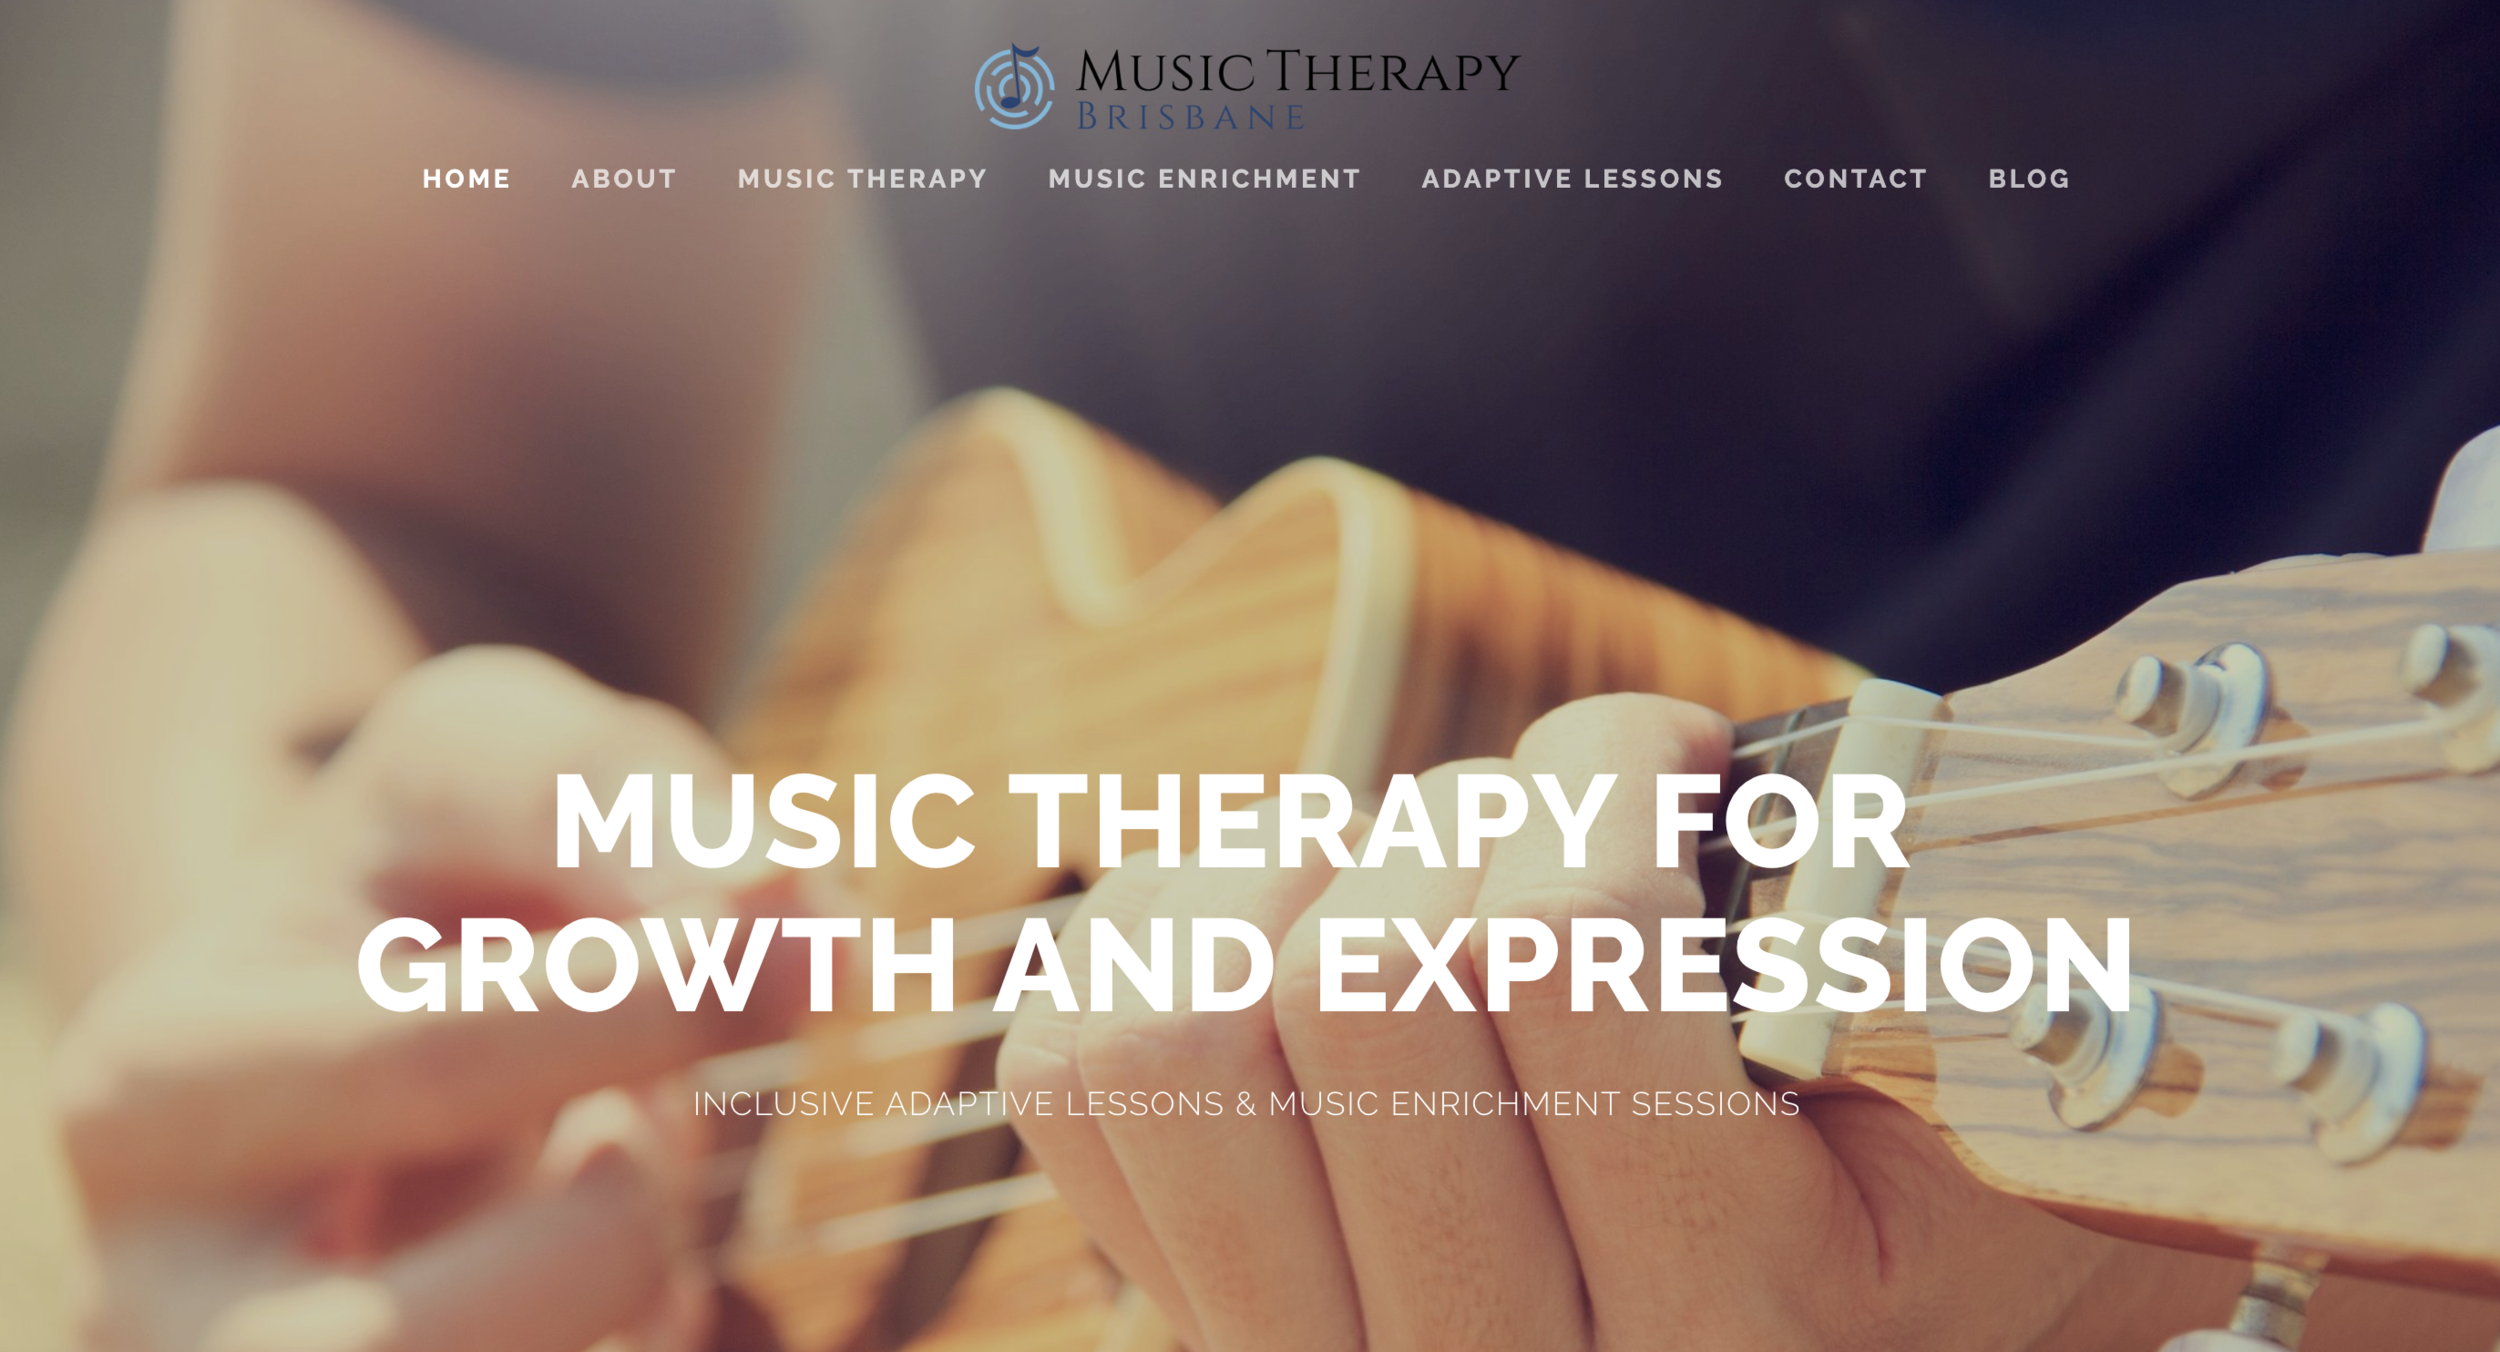 Music therapy website design on Squarespace